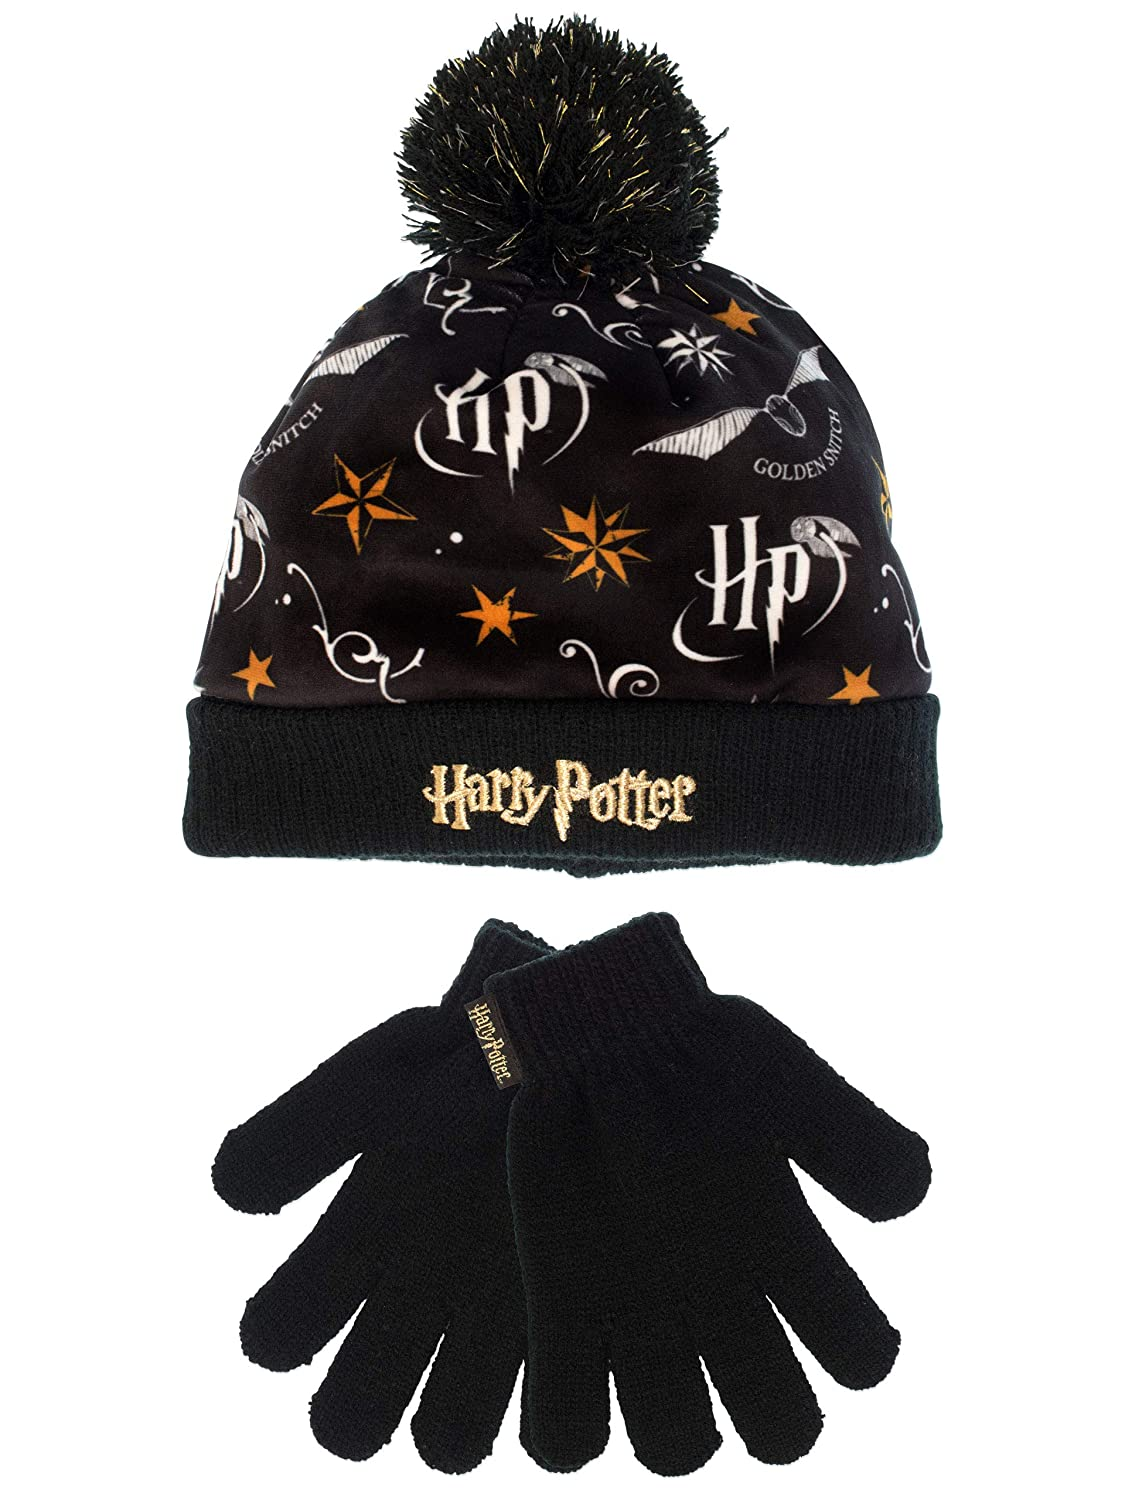 Harry Potter Girls Hat & Gloves Set One Size